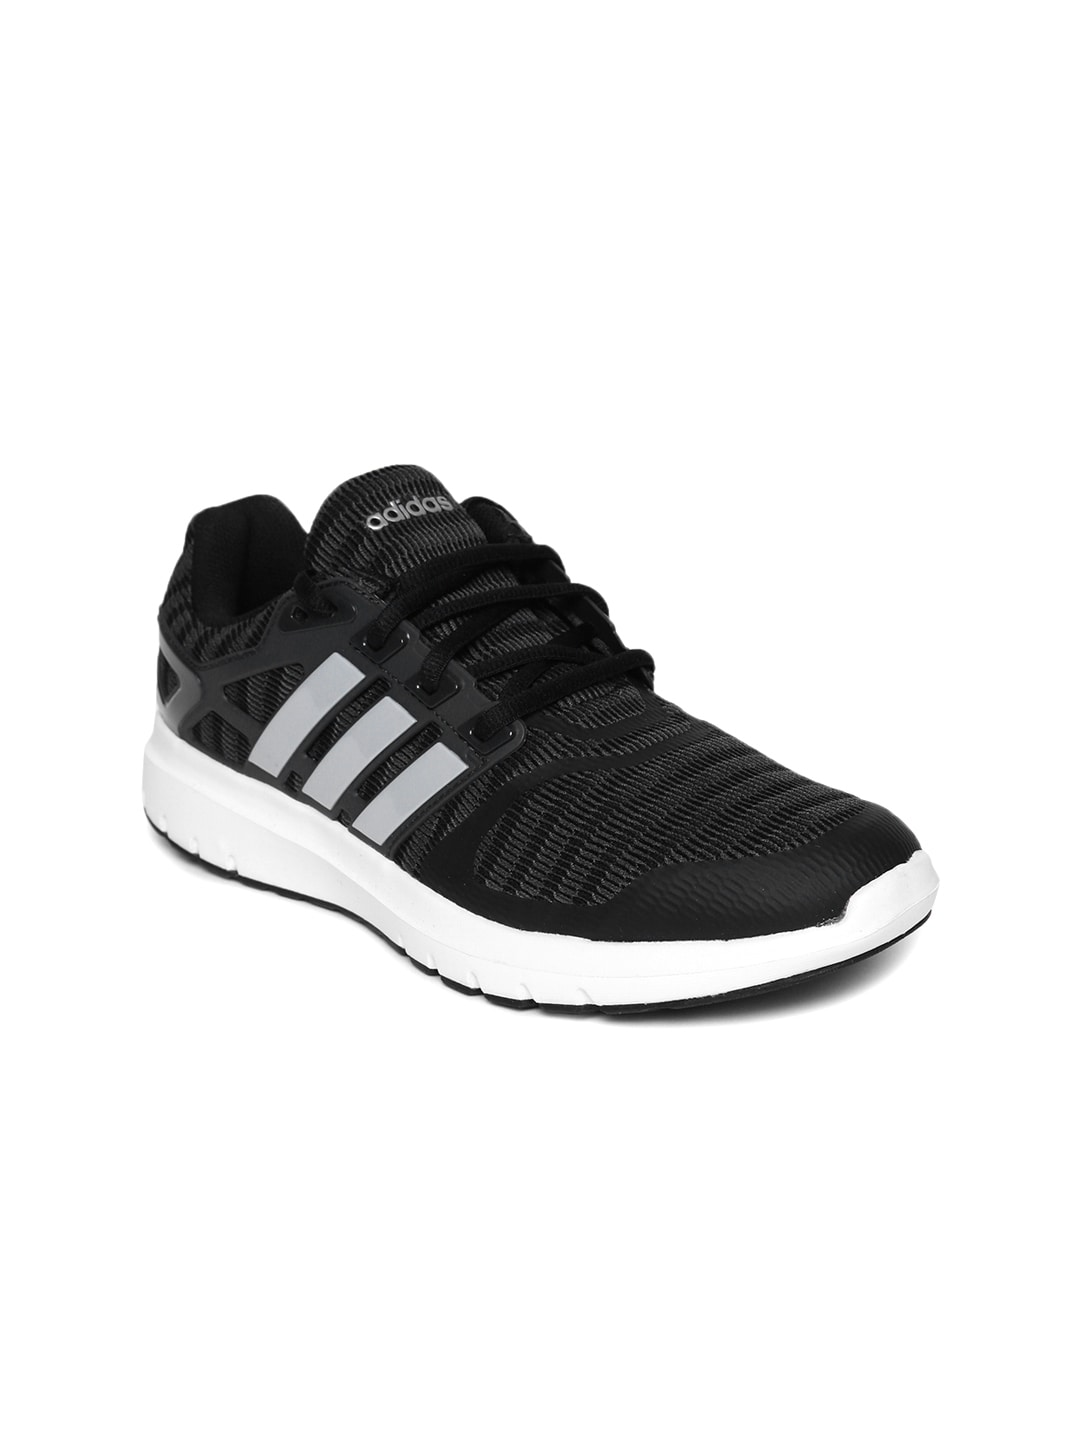 new arrival 72d63 559da Women s Adidas Shoes - Buy Adidas Shoes for Women Online in India